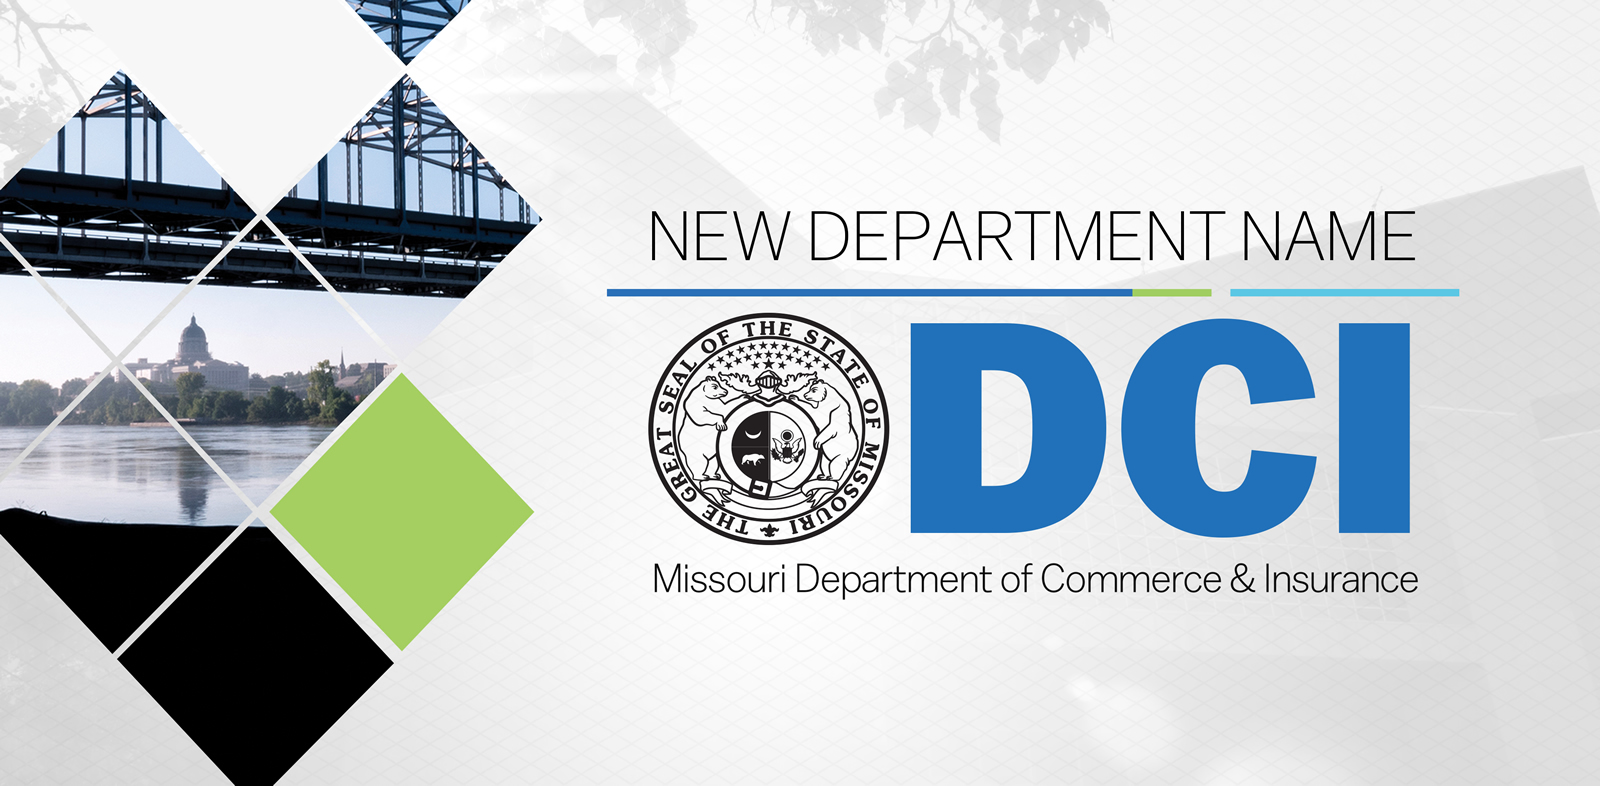 DCI is our new department name click here to view the site